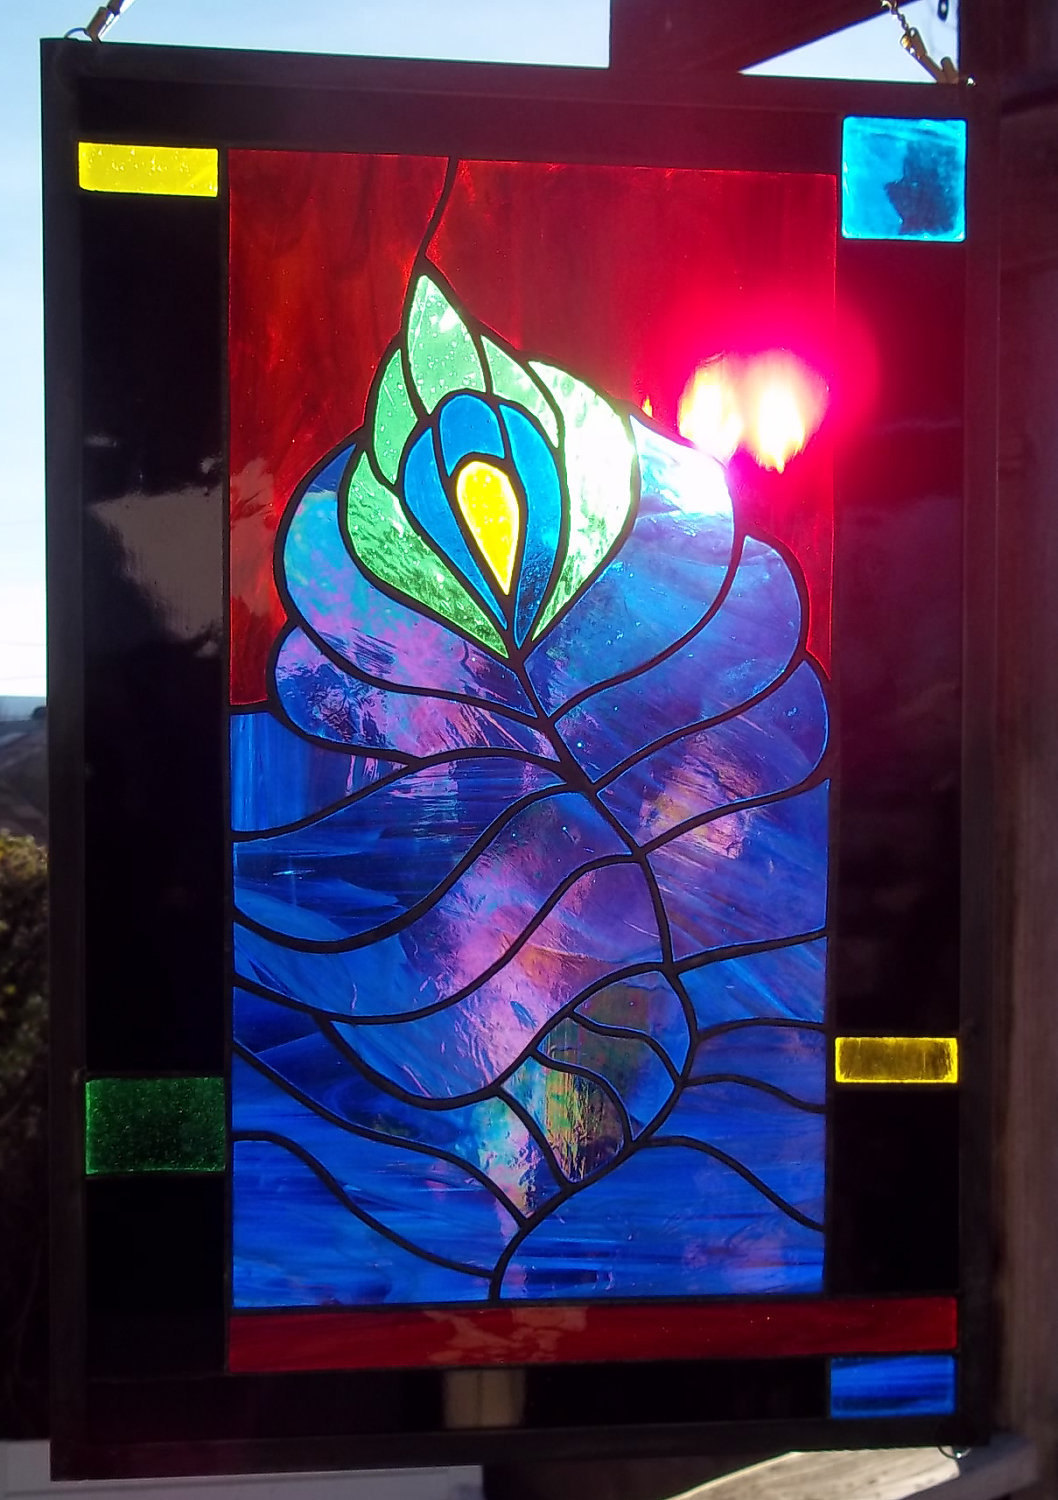 Stained Glass Window Peacock Feather Jewel Colors Red Green Yellow Black Blue